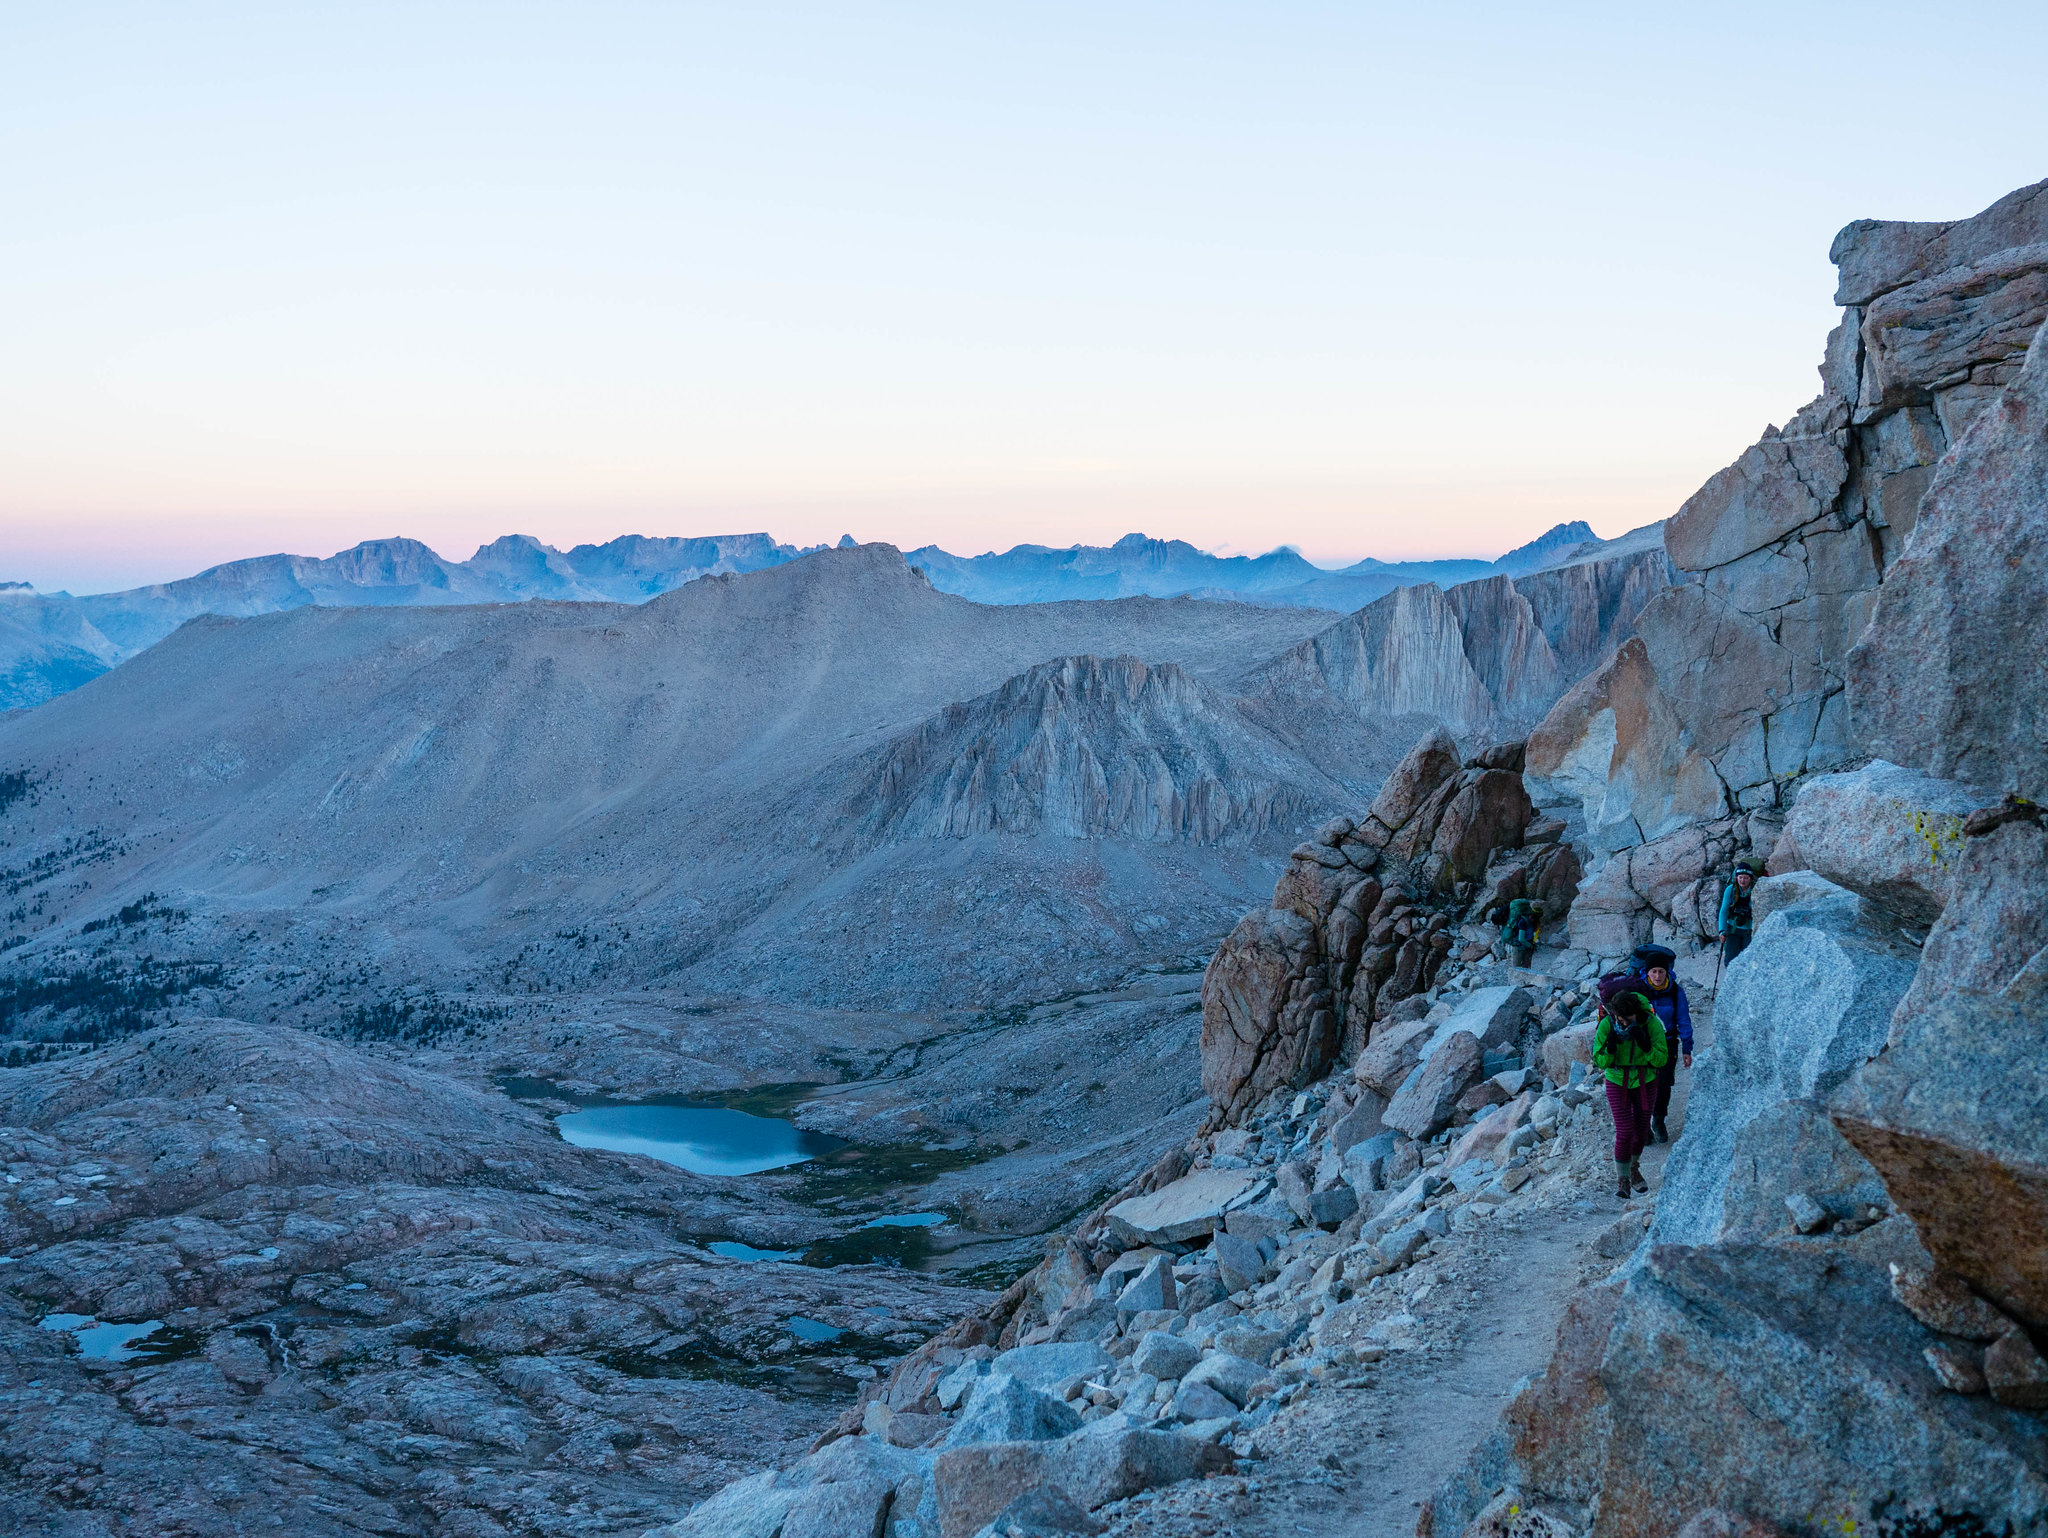 Hiking up towards Whitney as dawn sheds light on the Great Western Divide